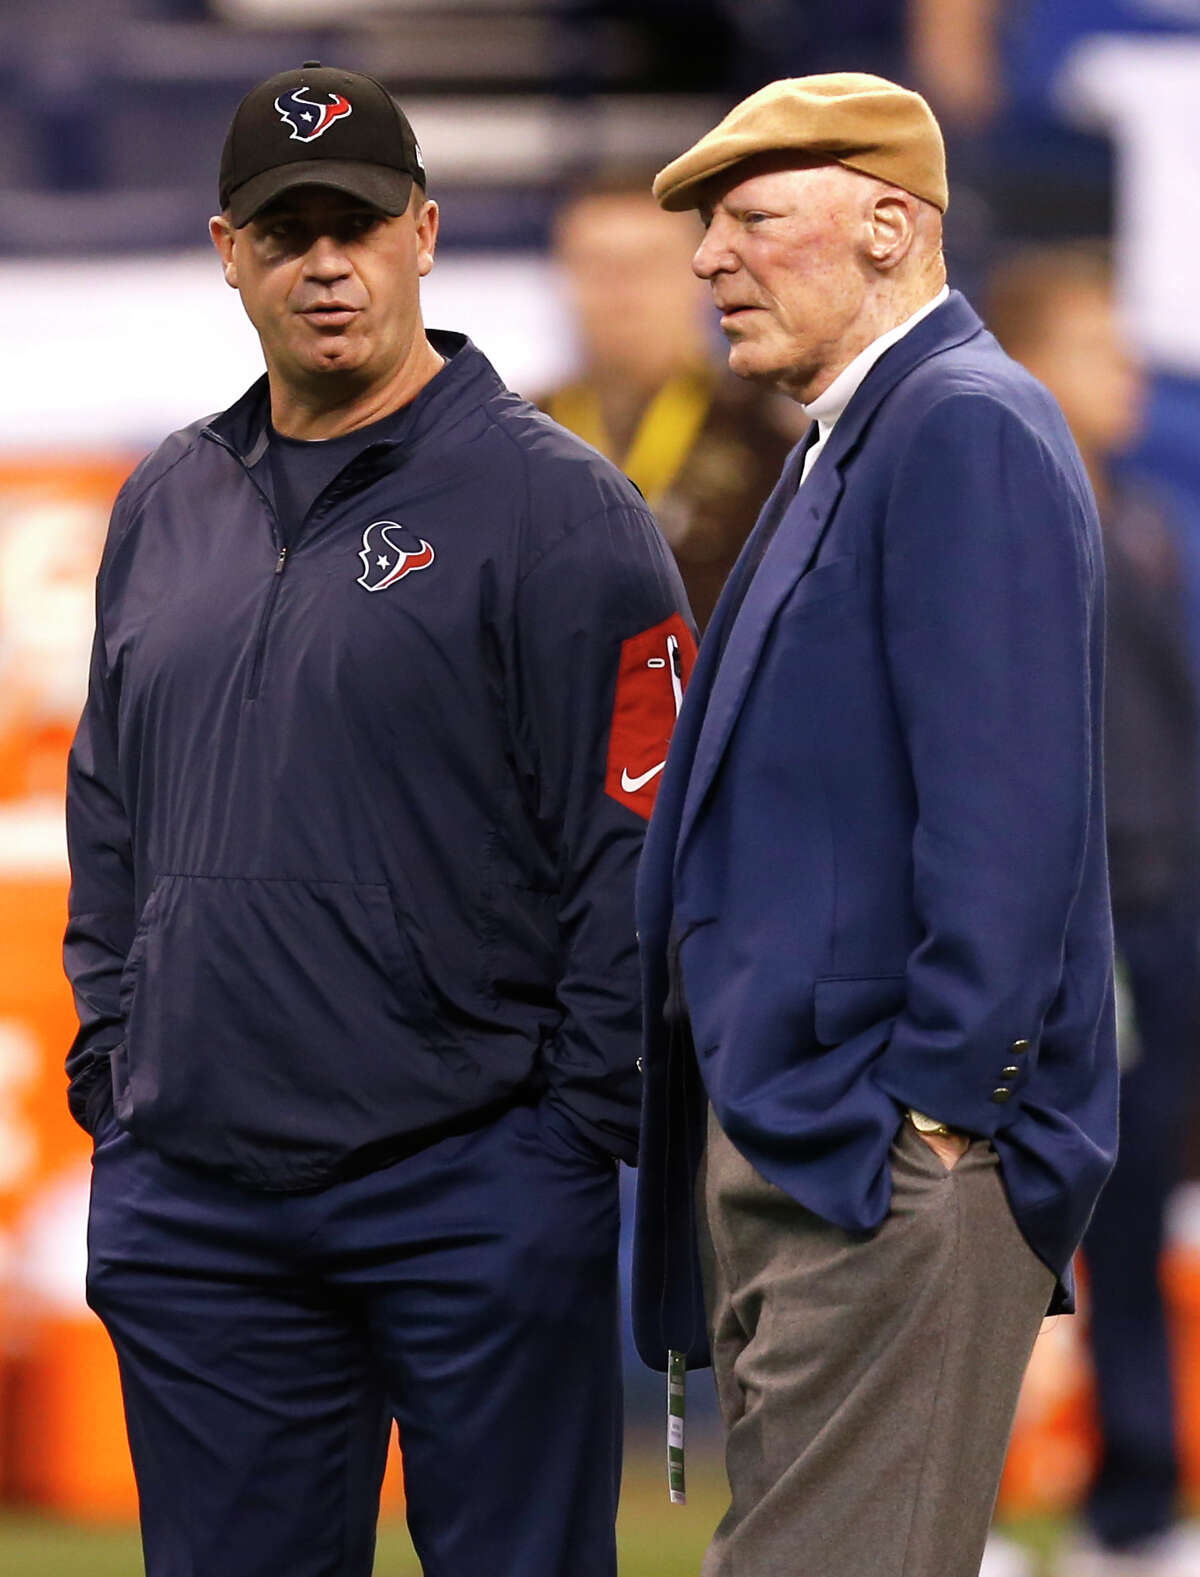 Houston Texans head coach Bill O'Brien stands with owner Bob McNair before an NFL football game against the Indianapolis Colts at Lucas Oil Stadium on Sunday, Dec. 11, 2016, in Indianapolis.